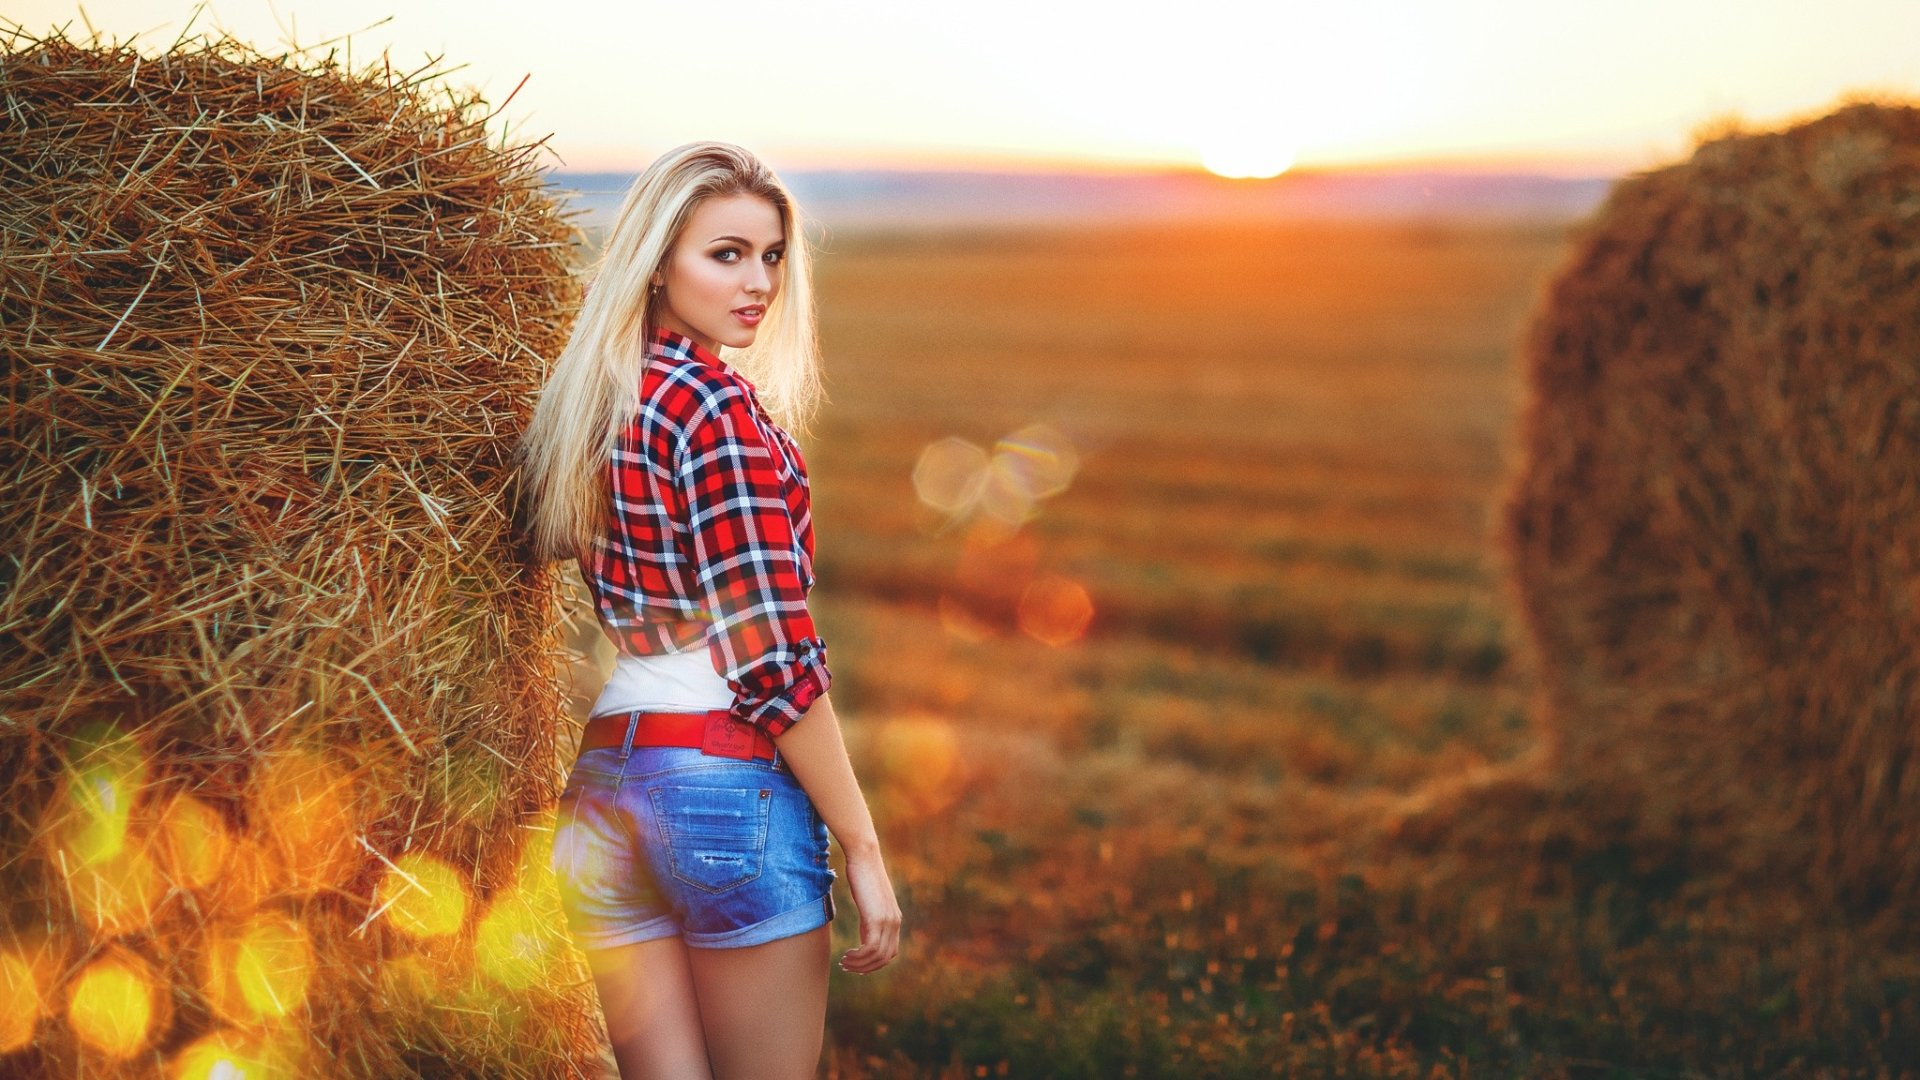 Women - Model  Blonde Shorts Woman Girl Haystack Wallpaper